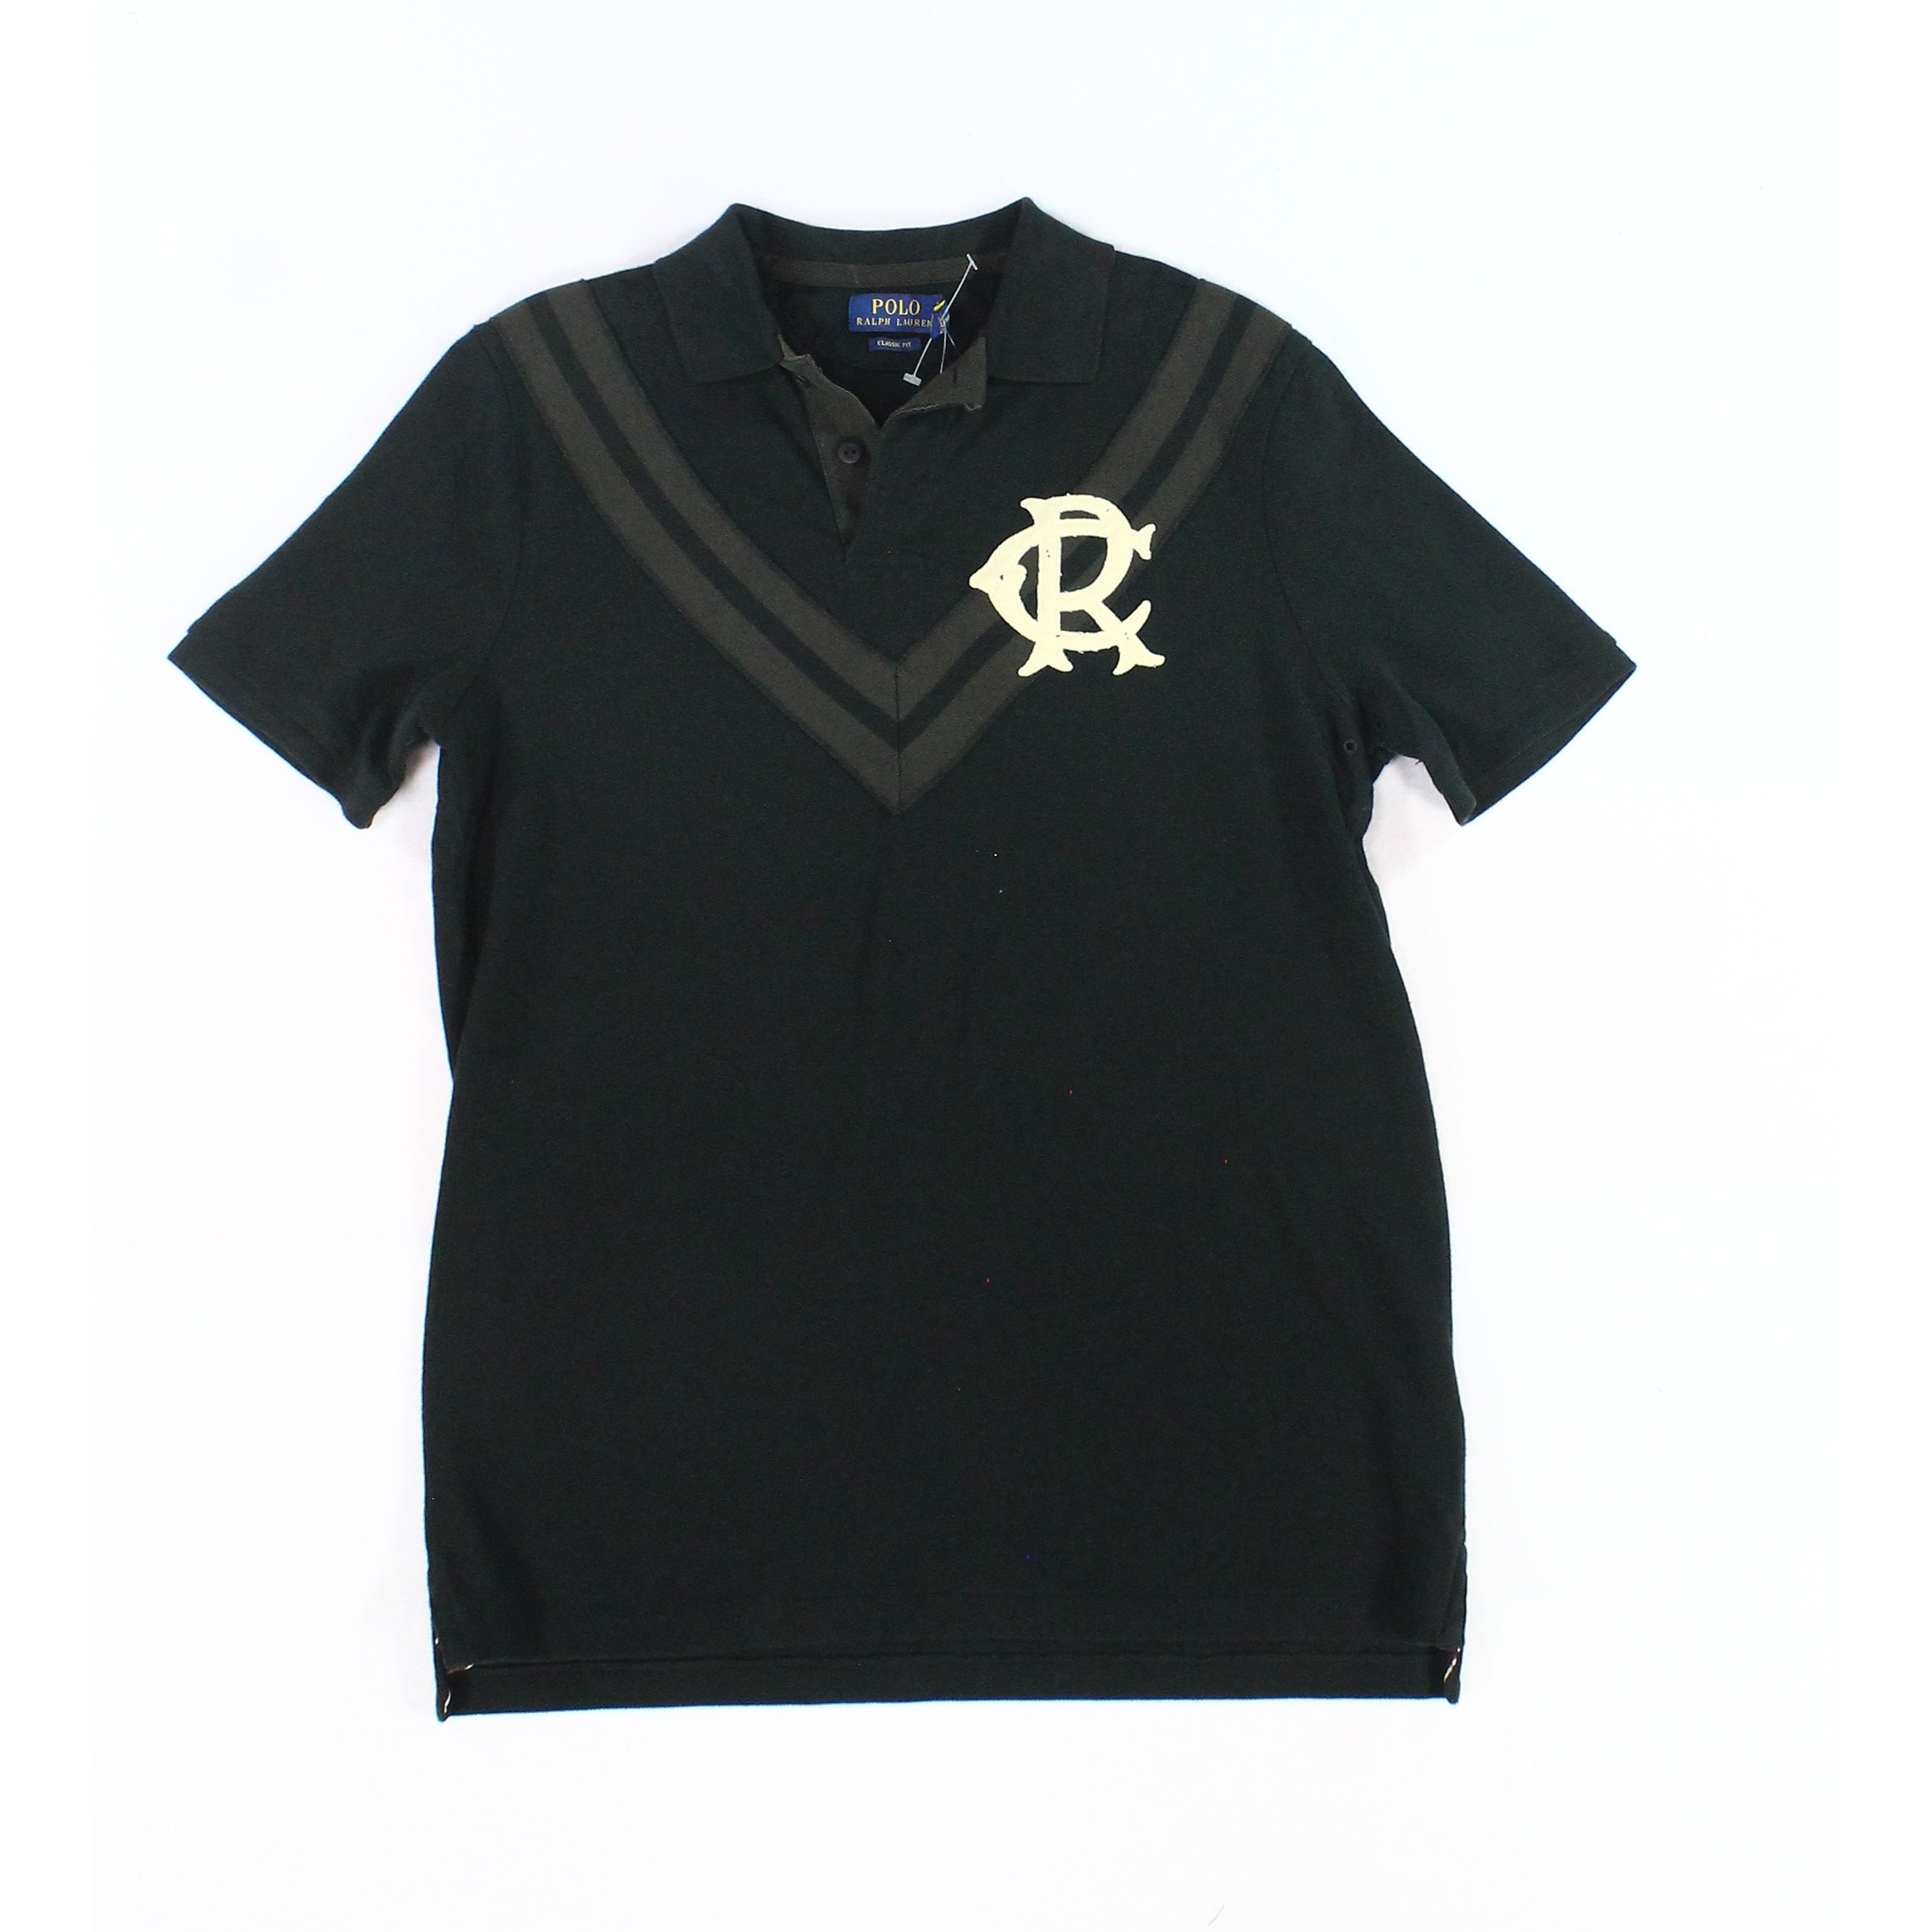 8eb642297 Polo Ralph Lauren Shirts   Find Great Men's Clothing Deals Shopping at  Overstock